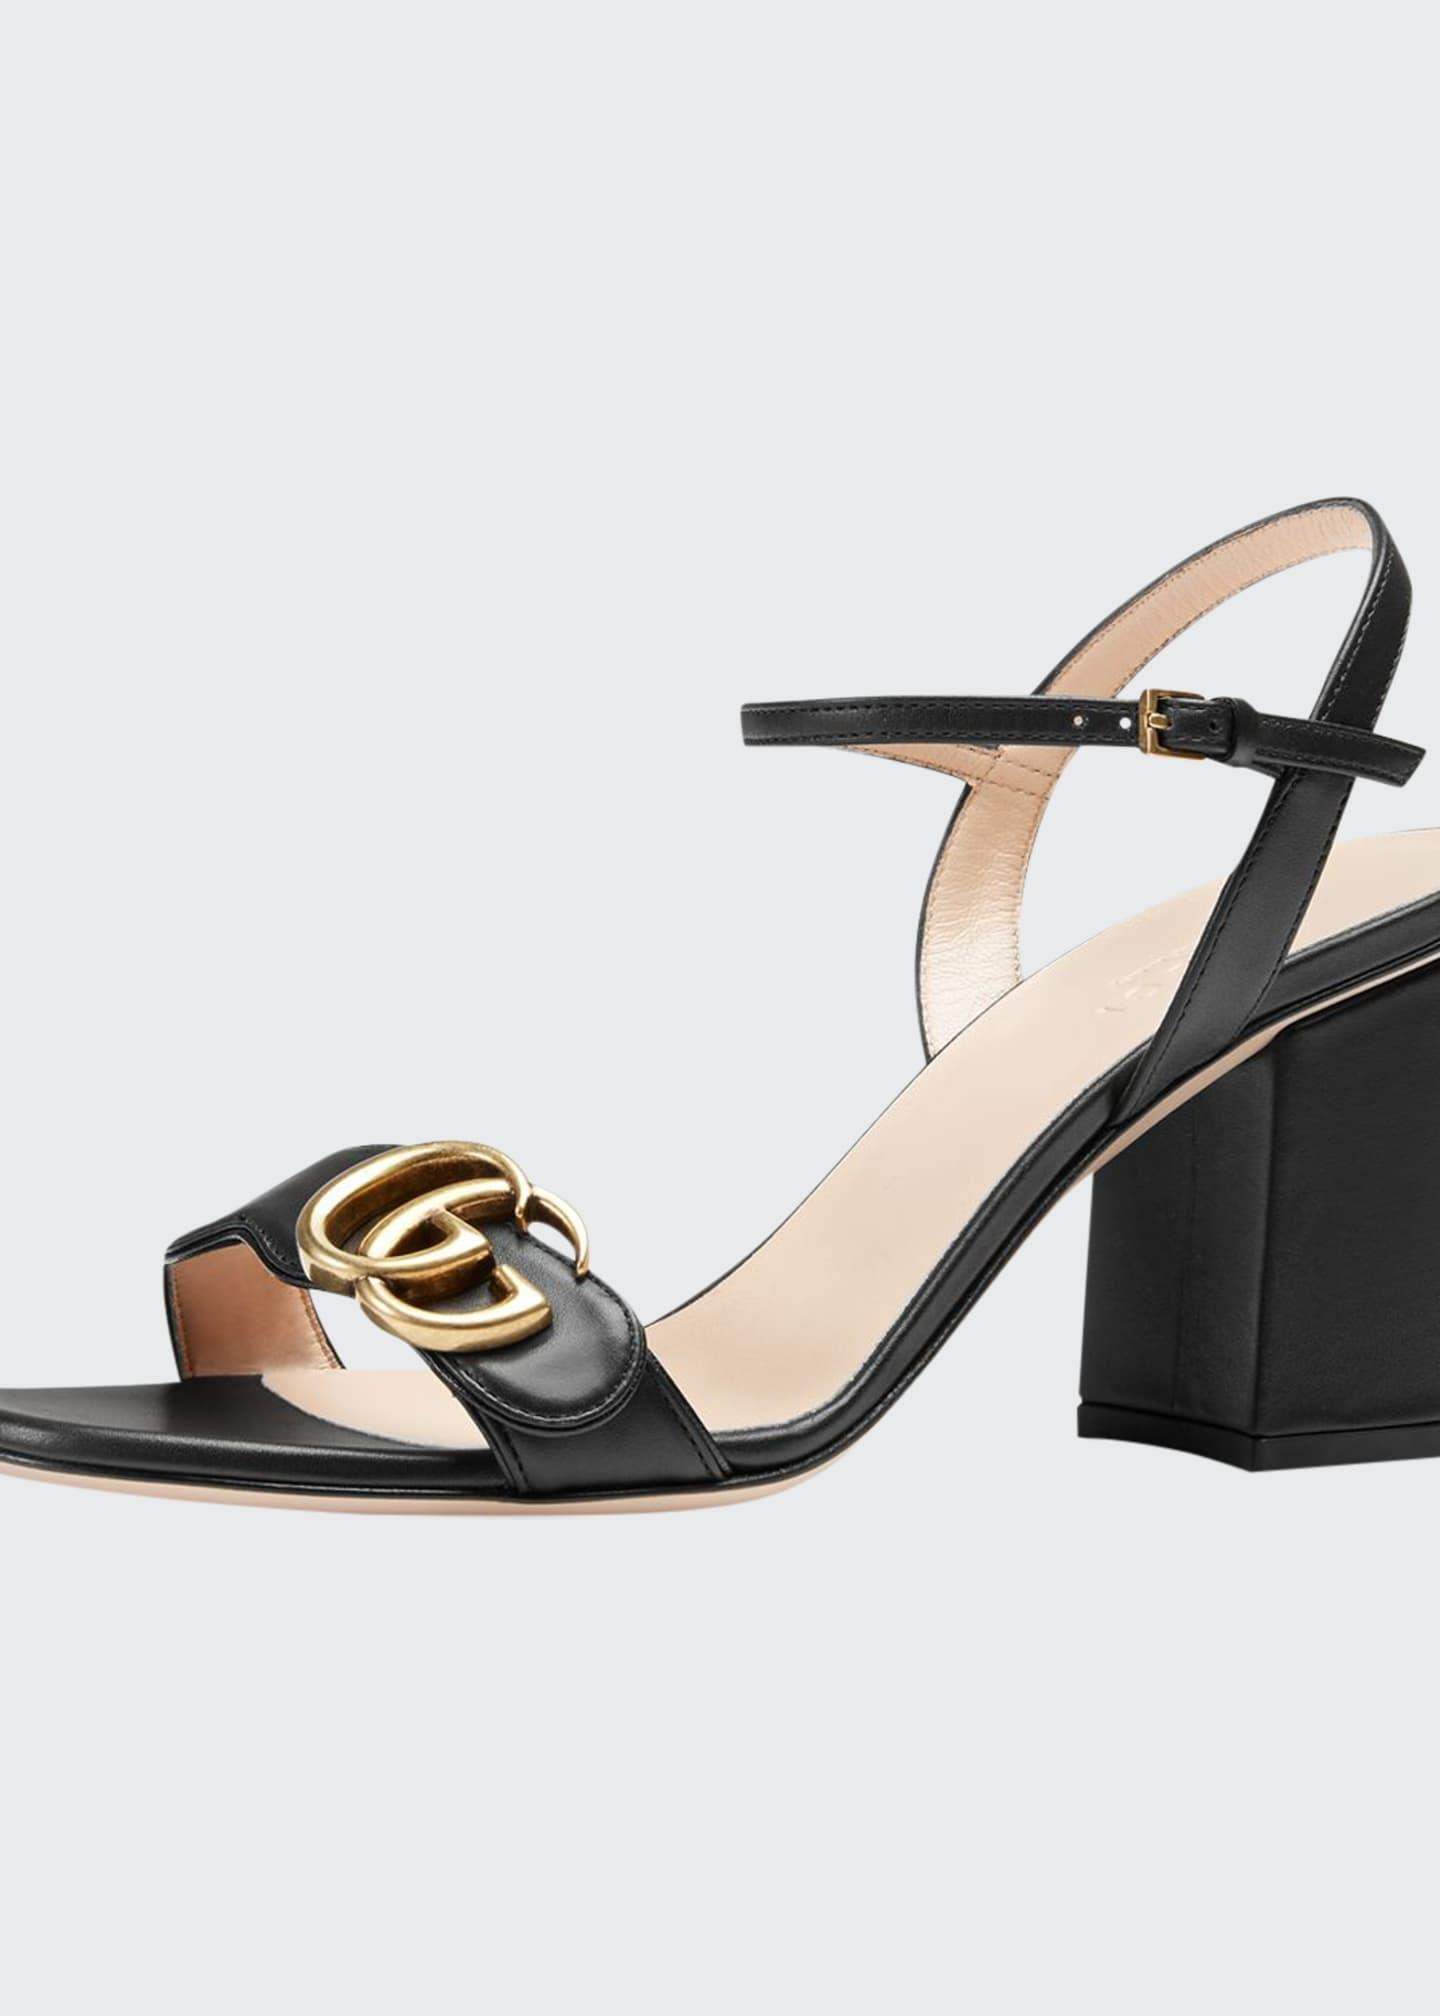 Gucci Marmont Leather GG Block-heel